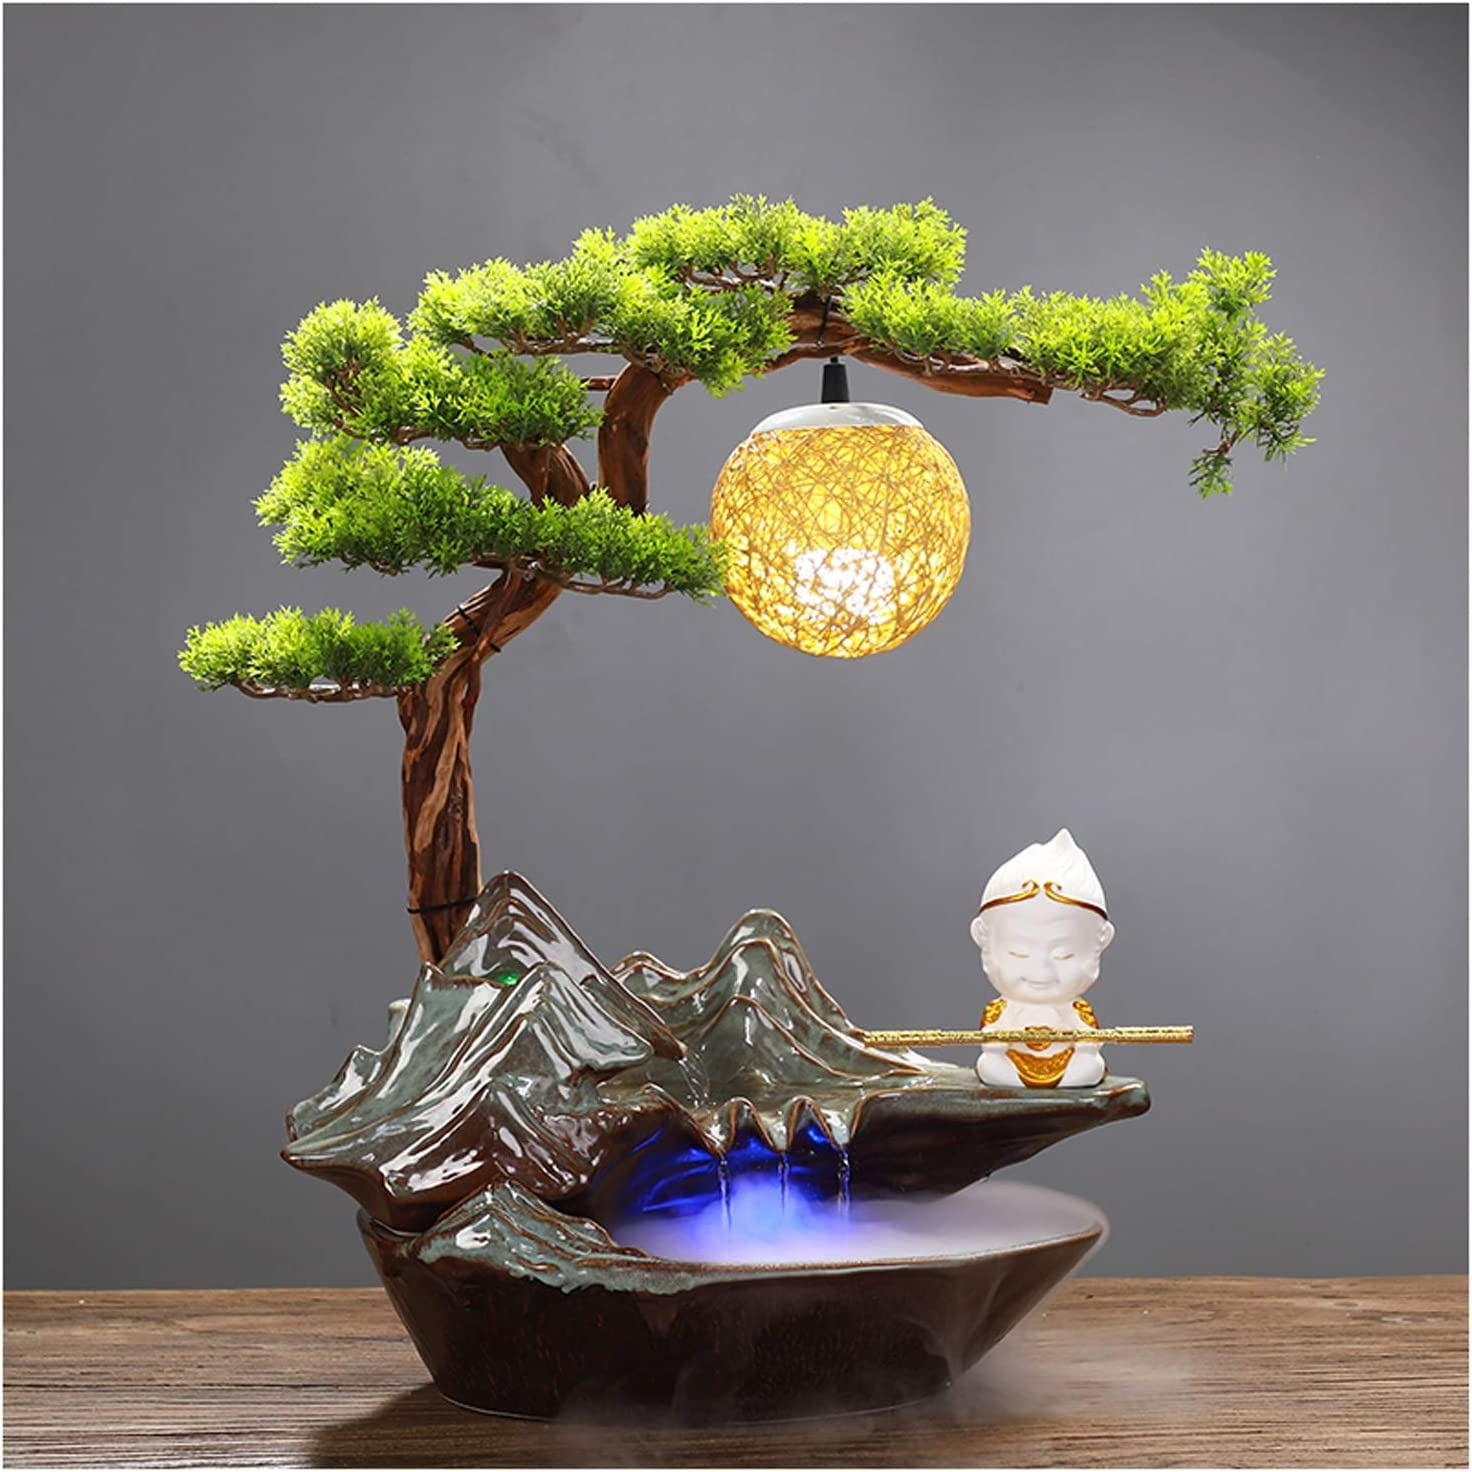 Water Fountains Indoor Rockery Obje Ball Fees free!! Transfer Fountain Max 72% OFF